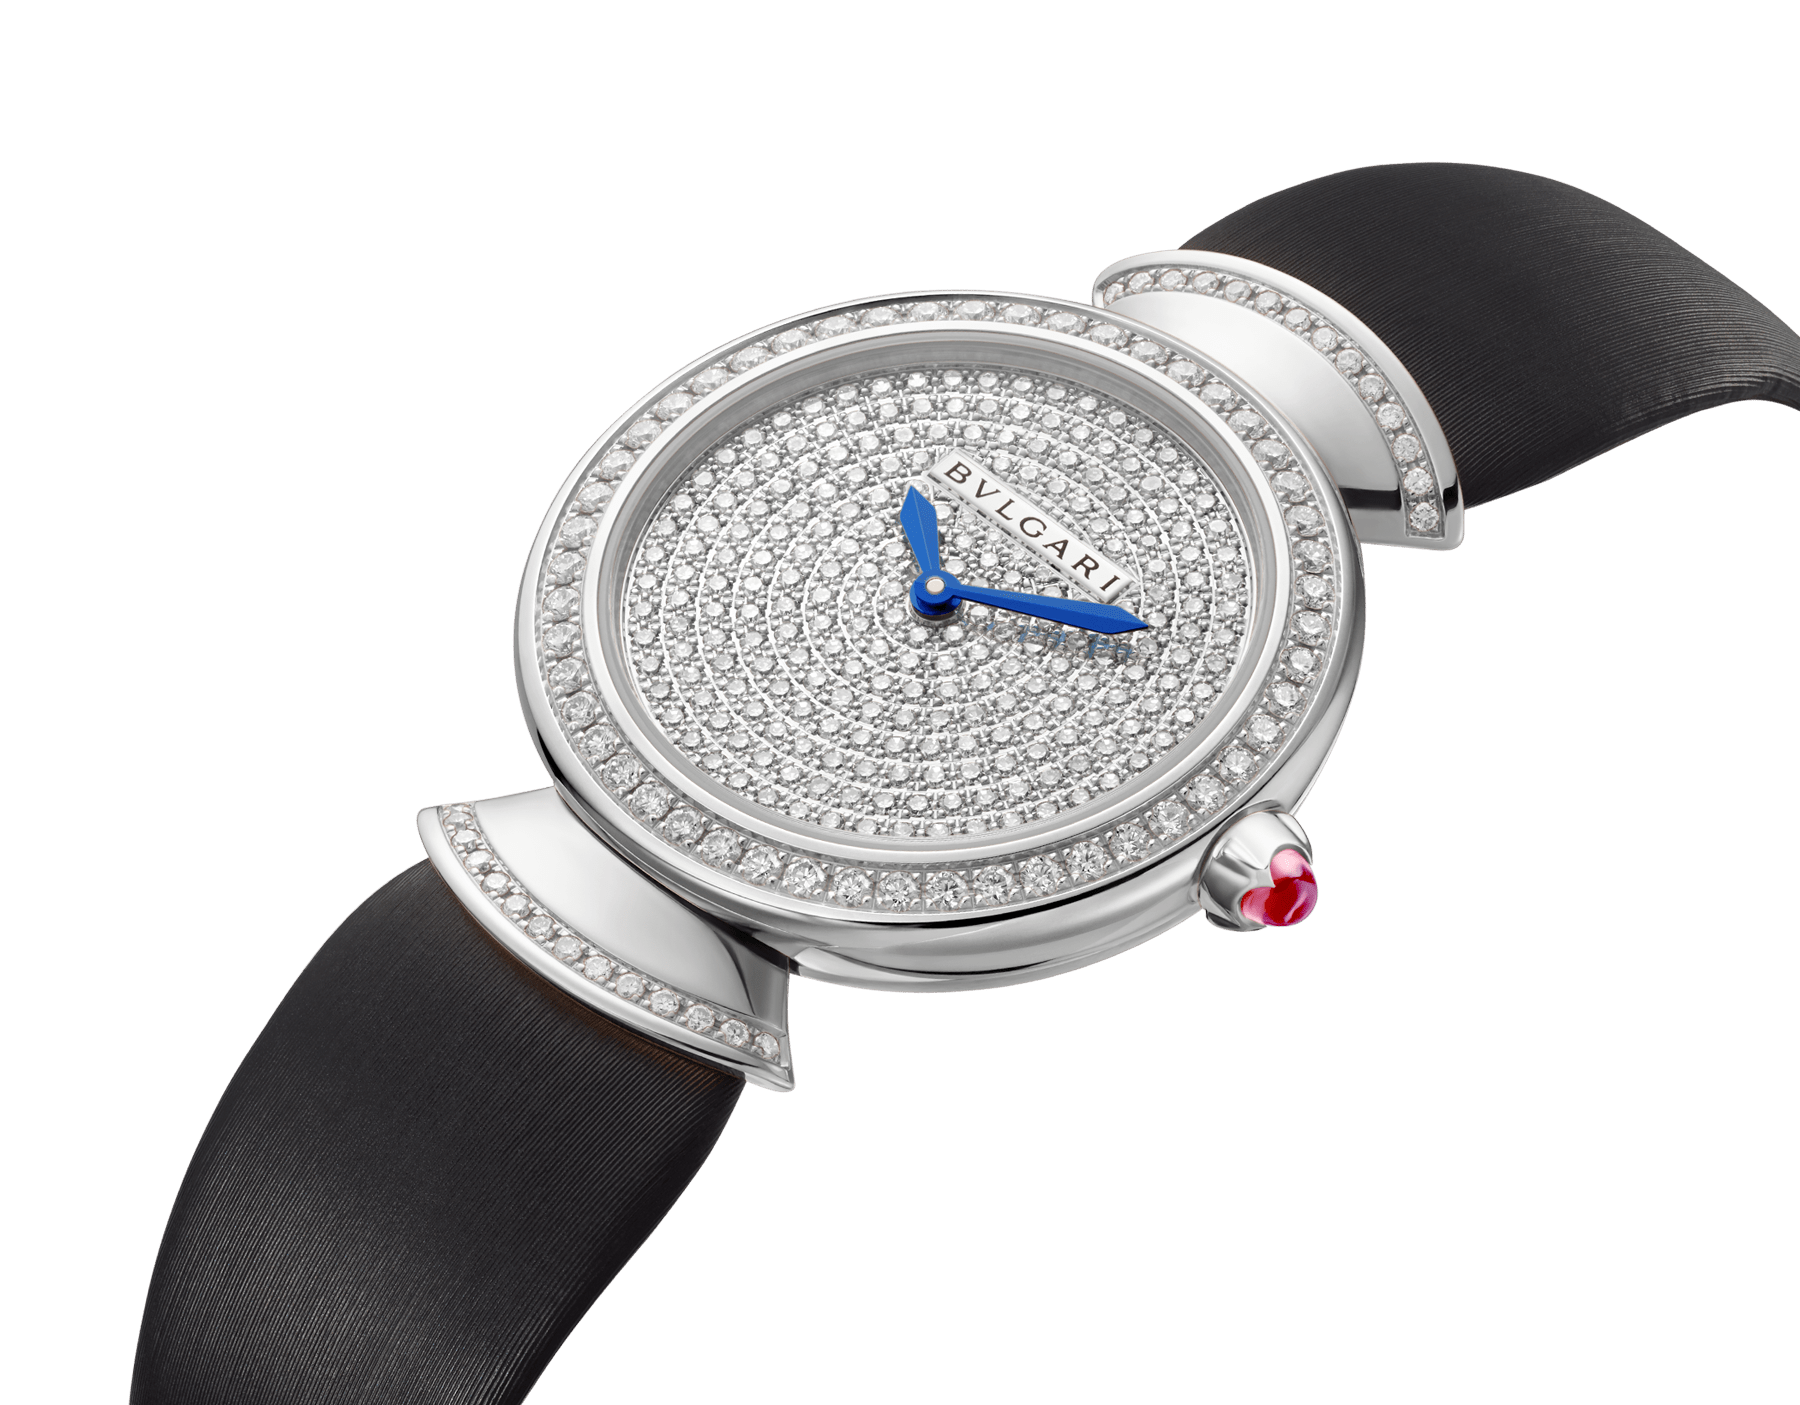 DIVAS' DREAM watch with 18 kt white gold case set with brilliant-cut diamonds, diamond-pavé dial and black satin bracelet 102561 image 2